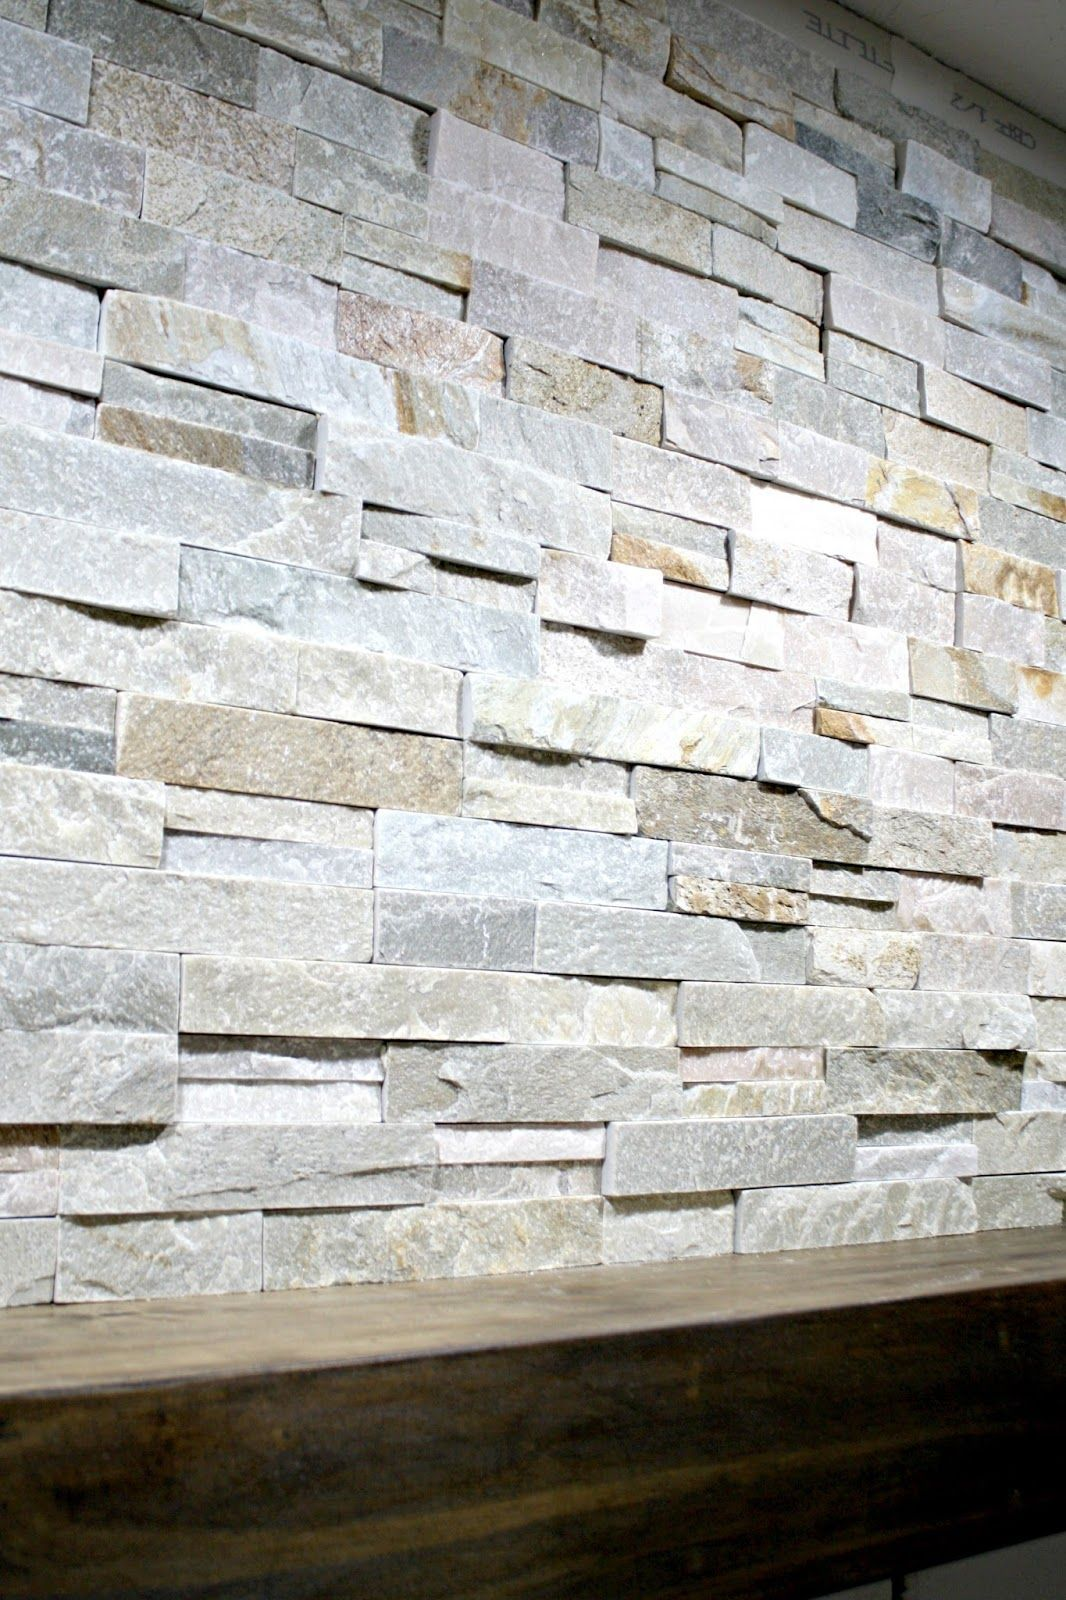 How To Install Stacked Stone Tile On Drywall Tiles Floors Of